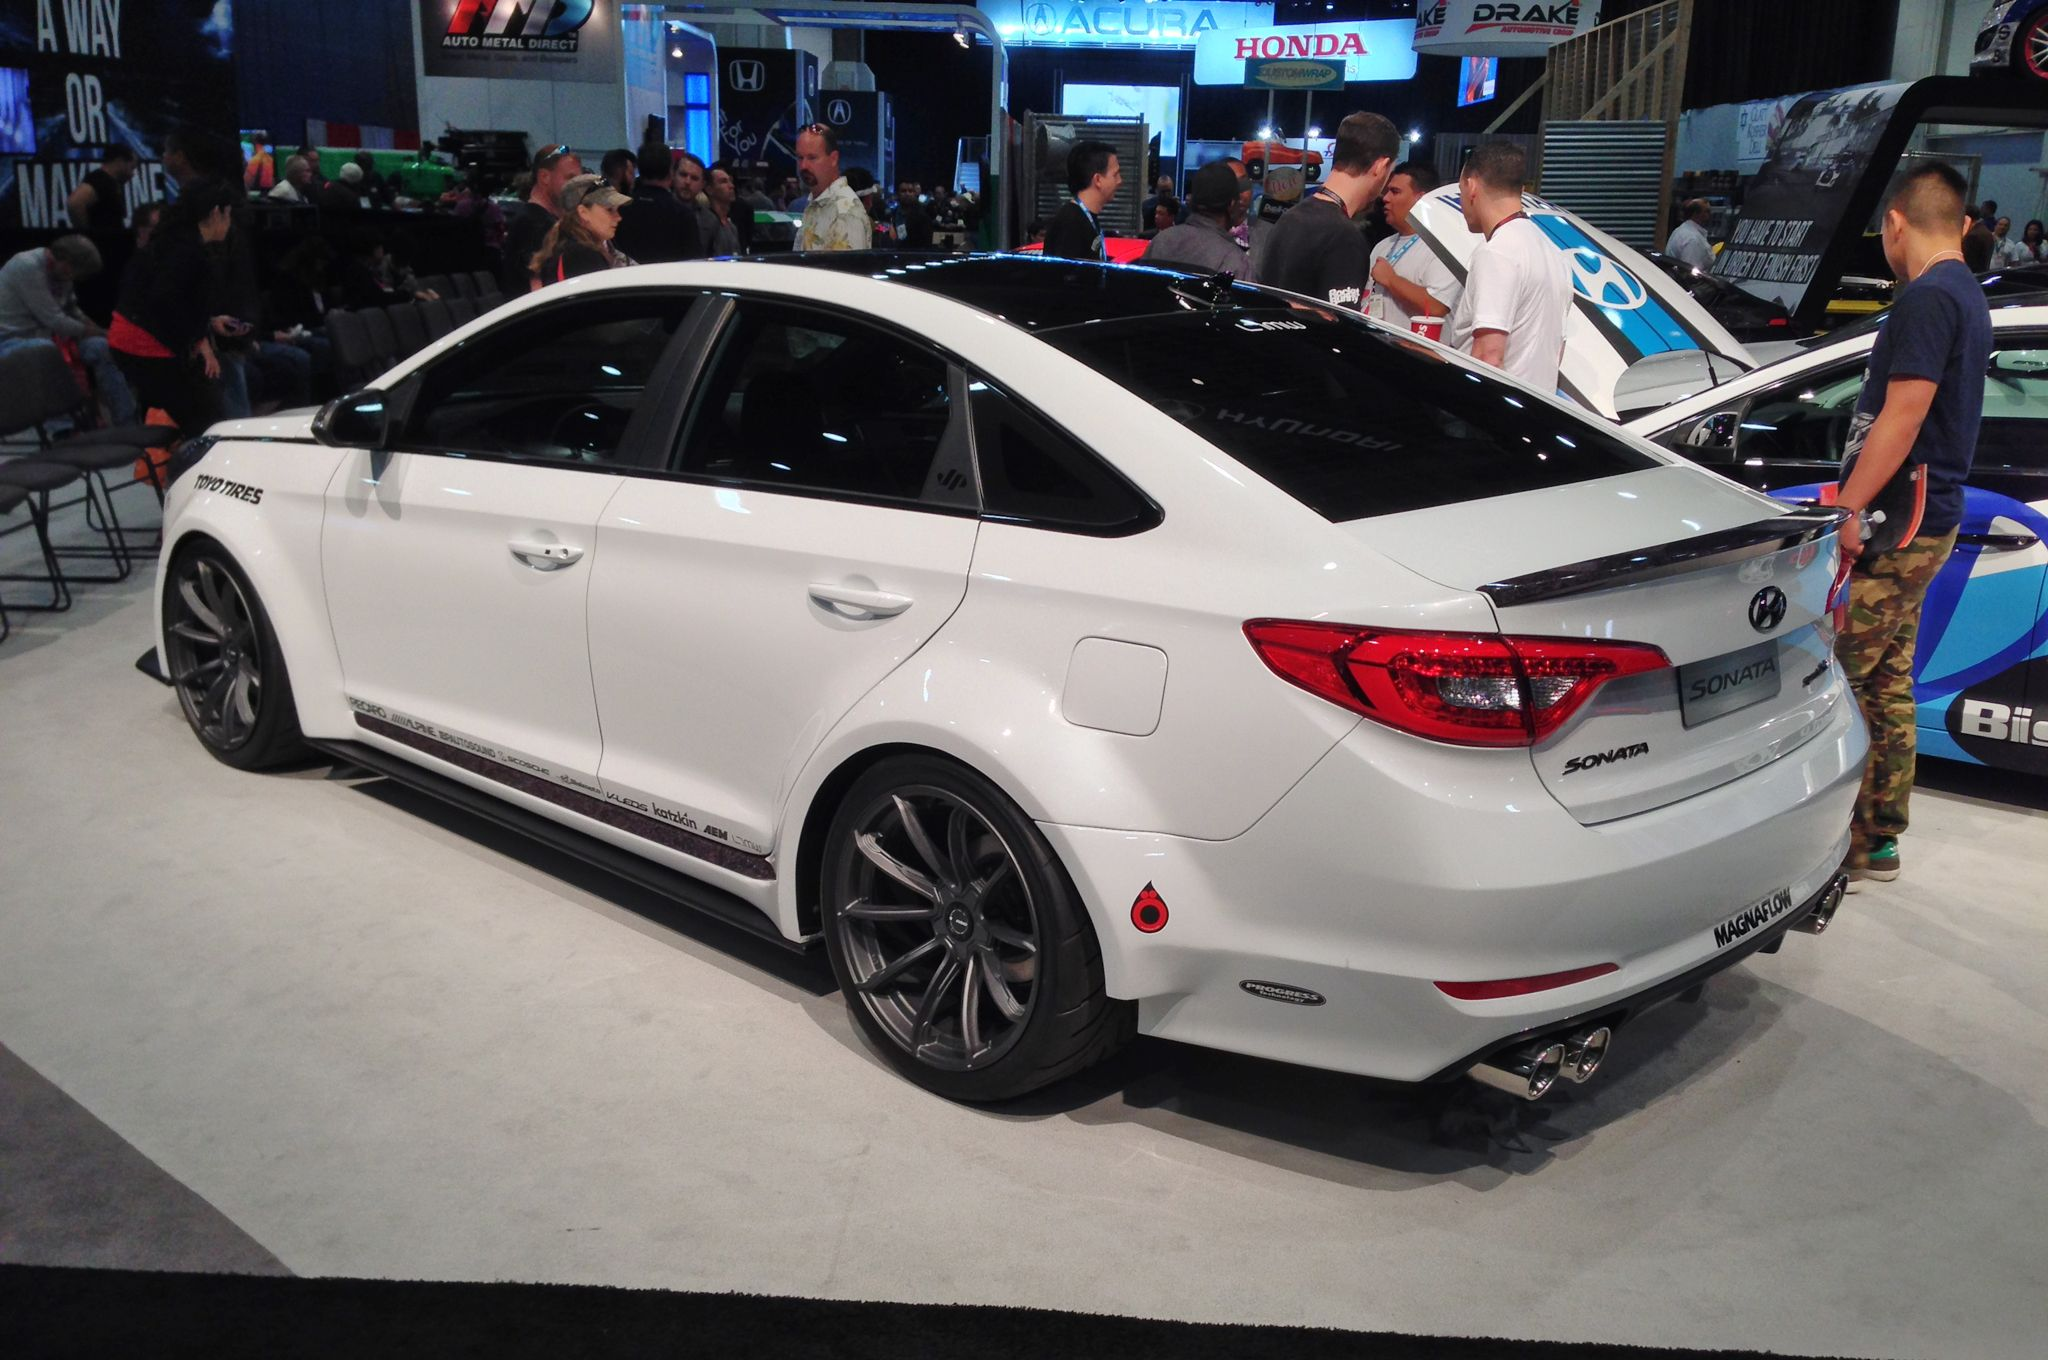 2015 hyundai sonata turbo jp edition car awsome colours best rh pinterest com